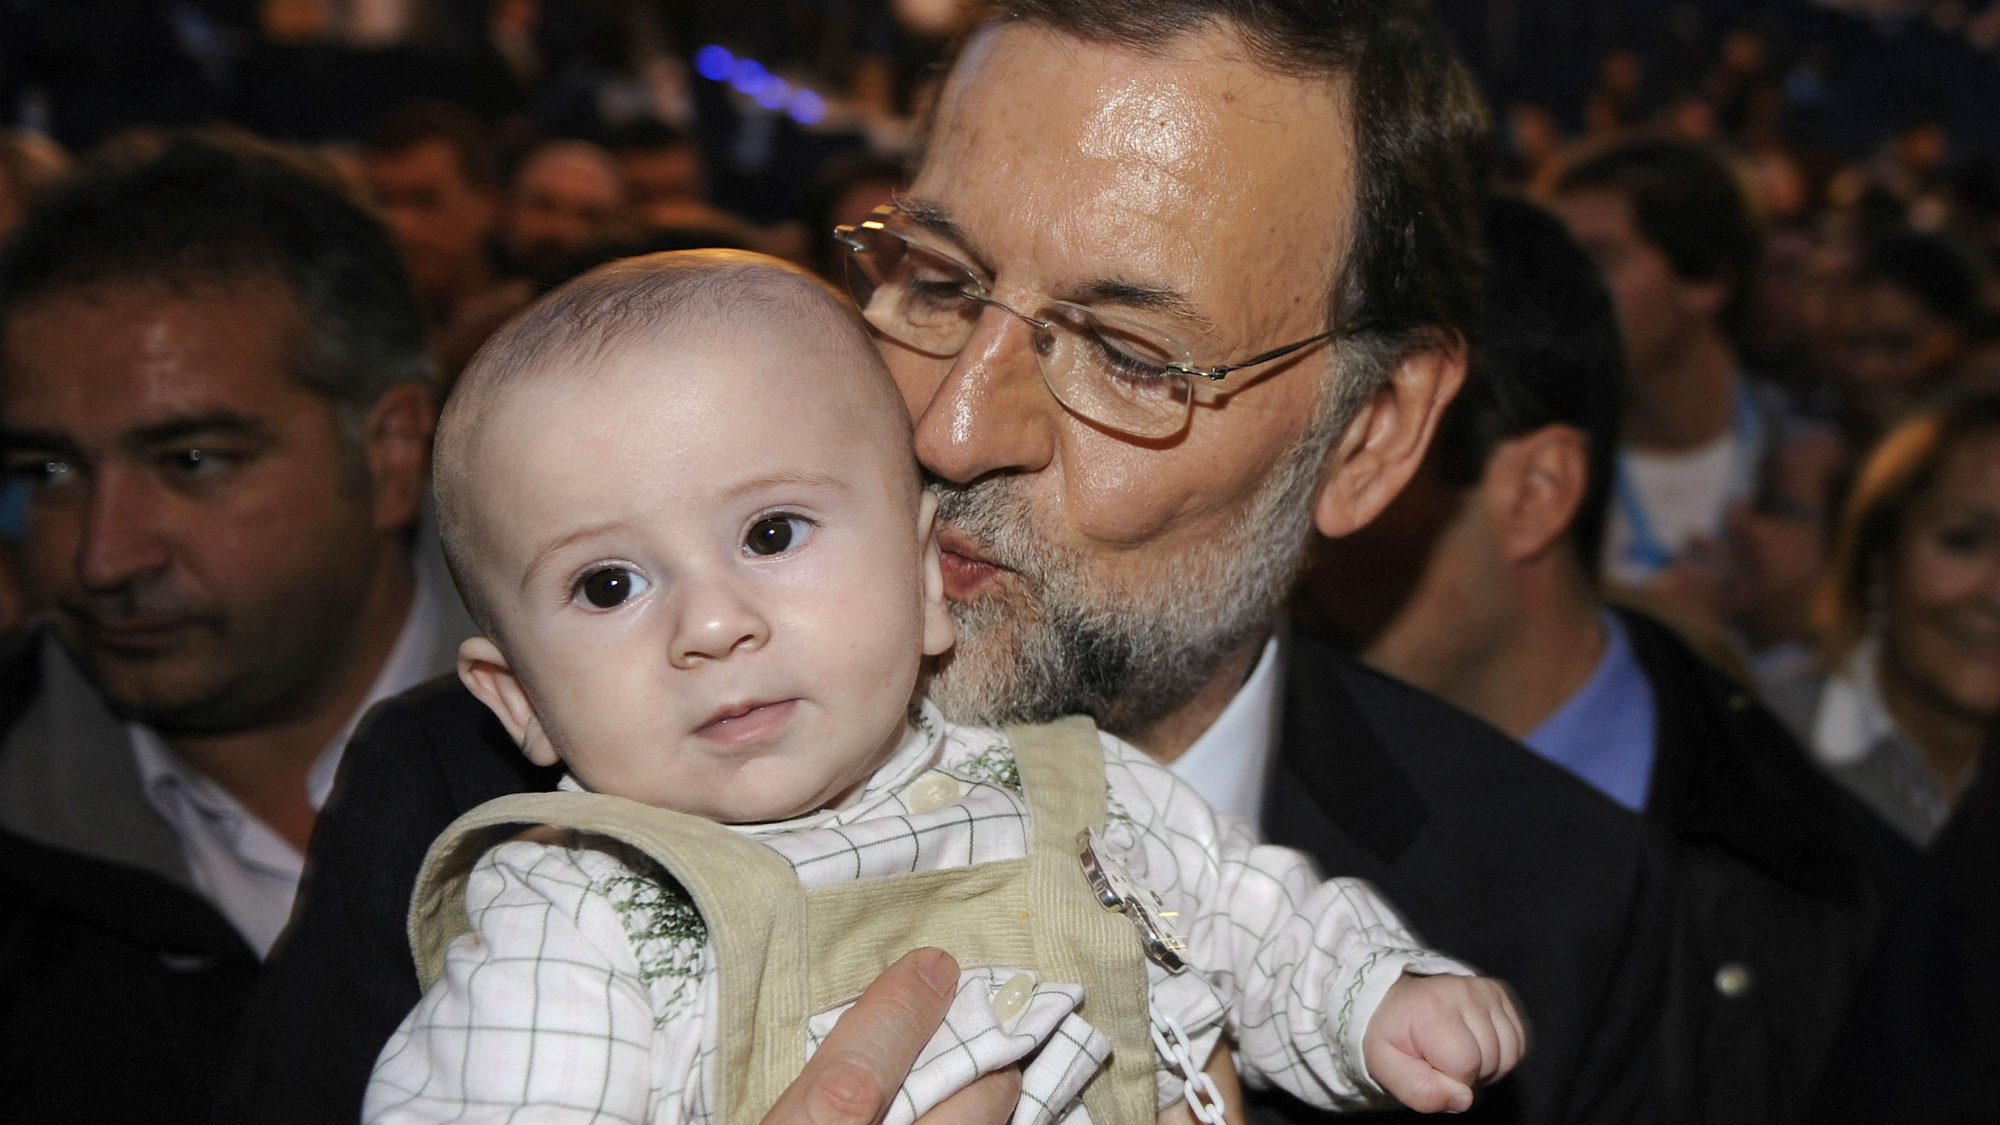 Spain's People's Party (Partido Popular) leader Mariano Rajoy kisses a baby after a rally in Oviedo, northern Spain.